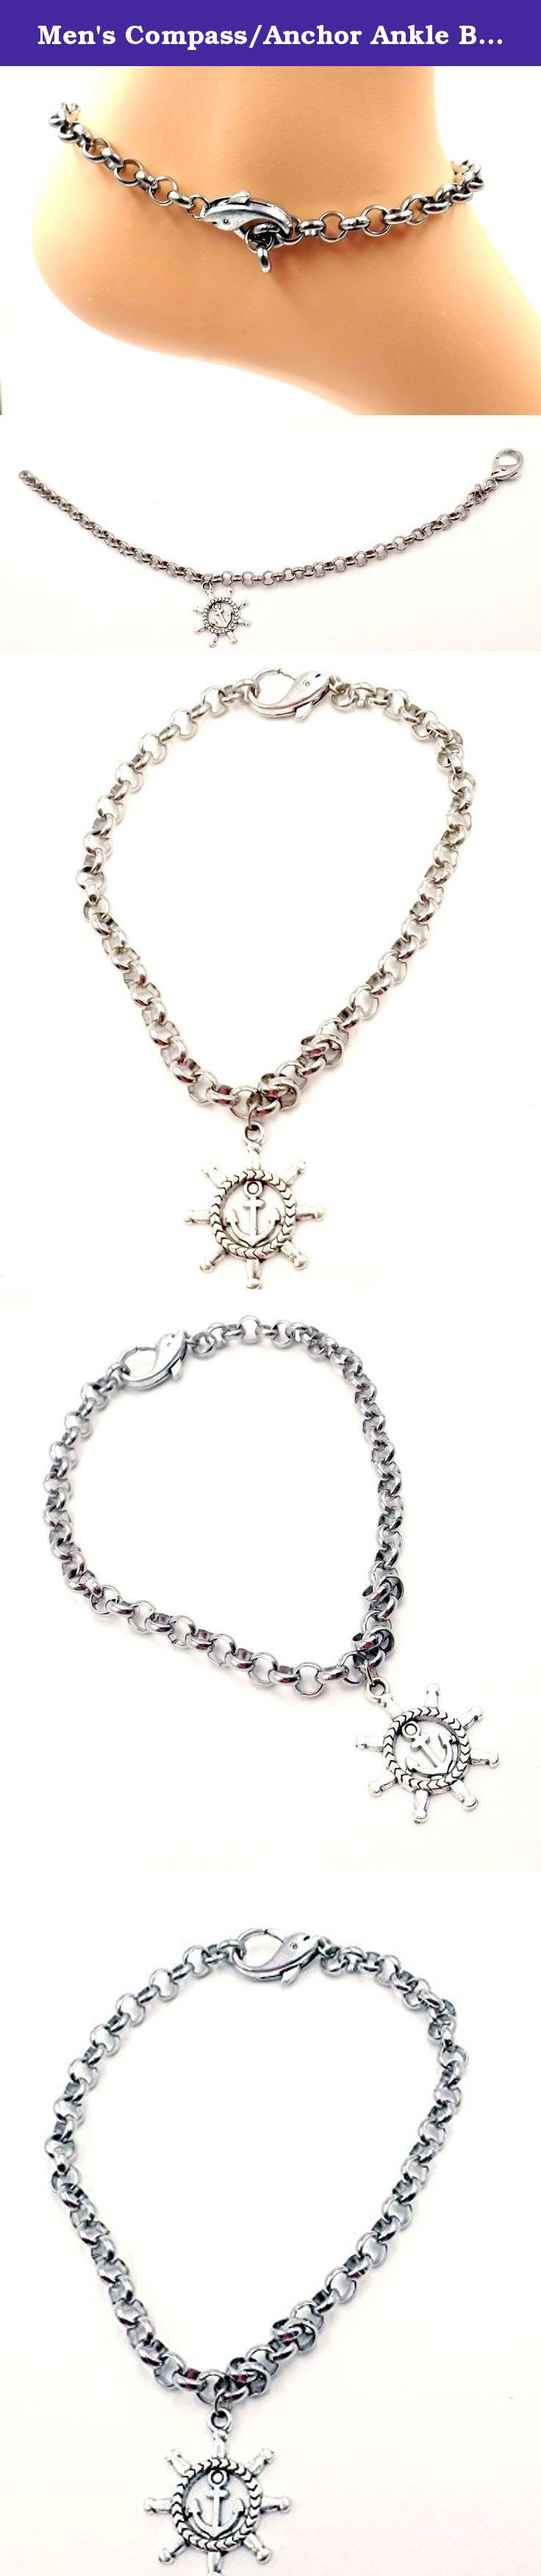 Men's Compass/Anchor Ankle Bracelet -Nautical Stainless Steel -Size 8-11- Ocean Lovers Collection. Ocean Lovers Collection. This anklet features a compass with an anchor inset charm on a stainless steel 5mm rolo chain and has the addition of a dolphin clasp. Available in sizes 8-11, please utilize customization to order correct size. To determine proper size measure ankle just below ankle bone and add 1/2 inch. Your anklet will arrive in a lovely gift box.